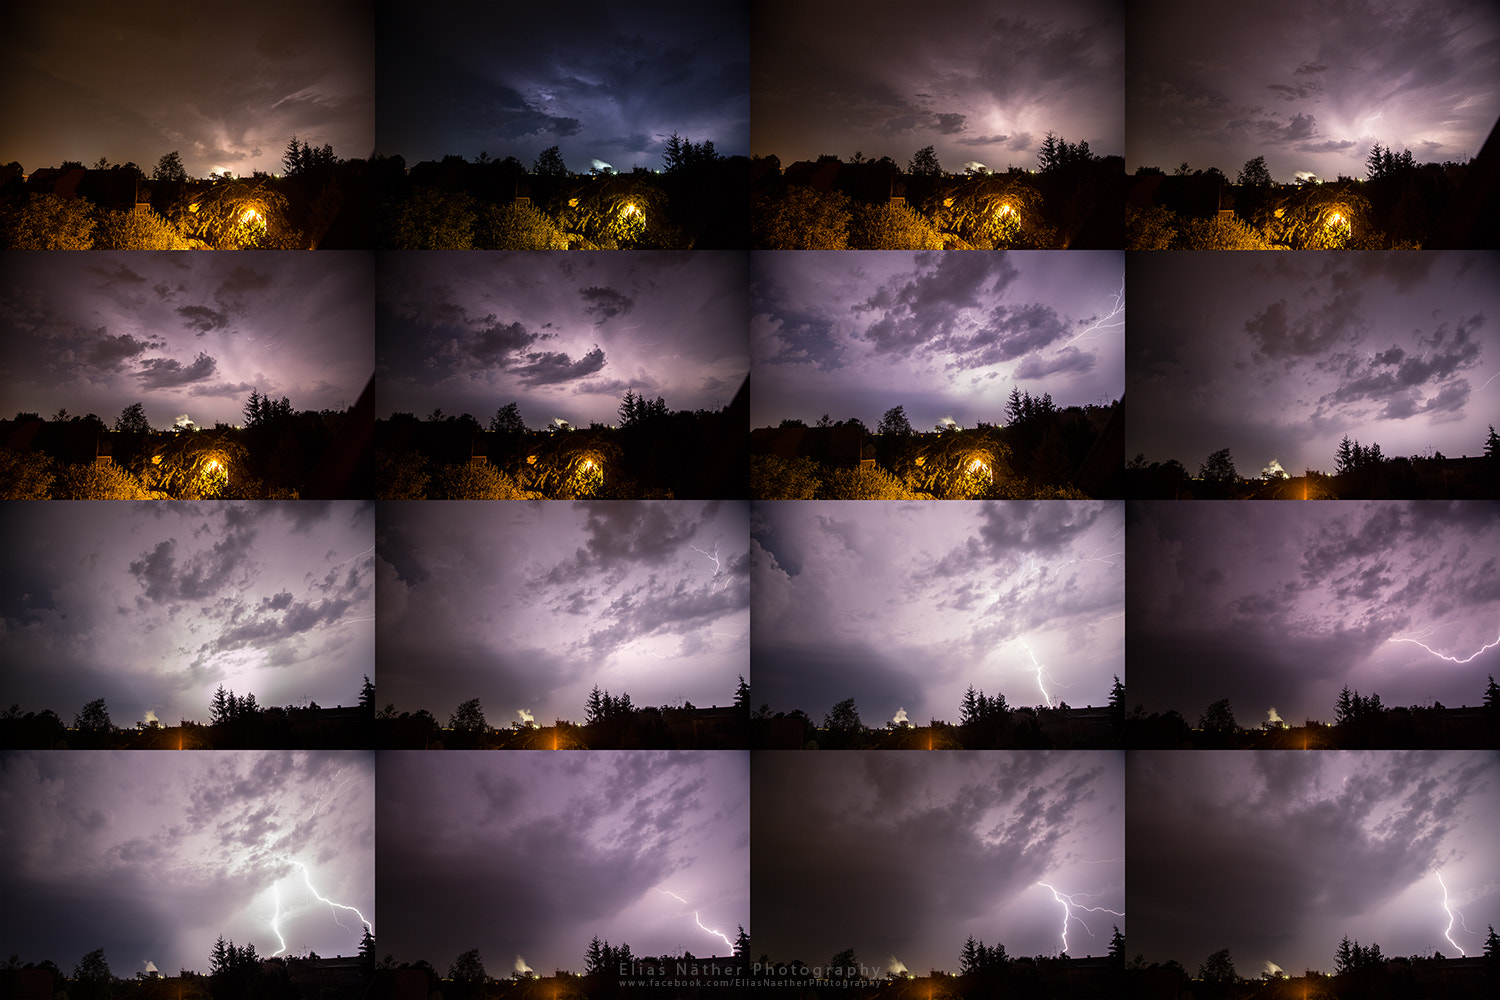 Photograph Thunder Collection by Elias Näther on 500px